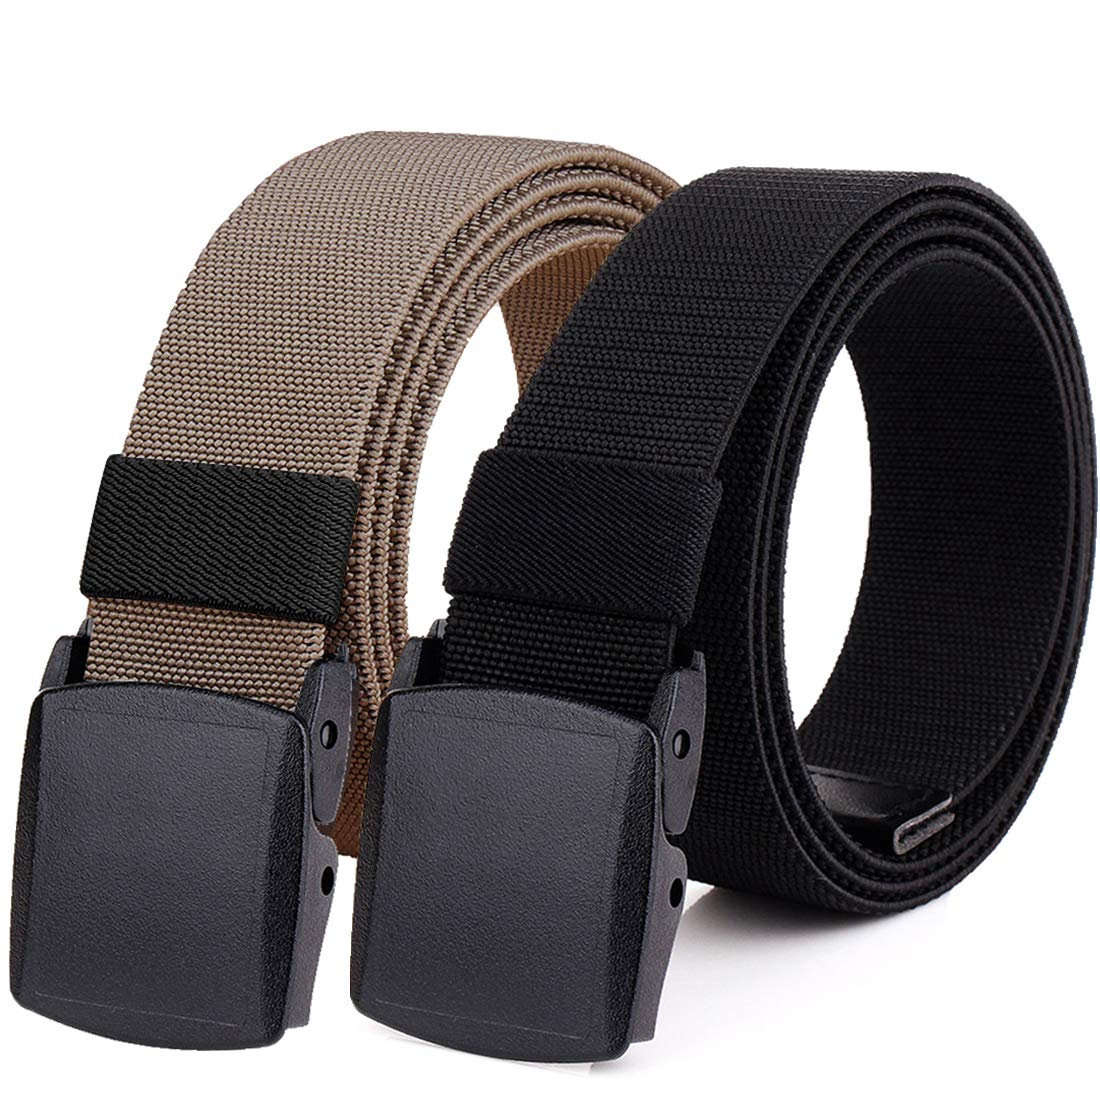 Hoanan 2-Pack Elastic Stretch Belt, Men's Plus Size No Metal Nylon Tactical Hiking Belt(black/brown-up to 42'')